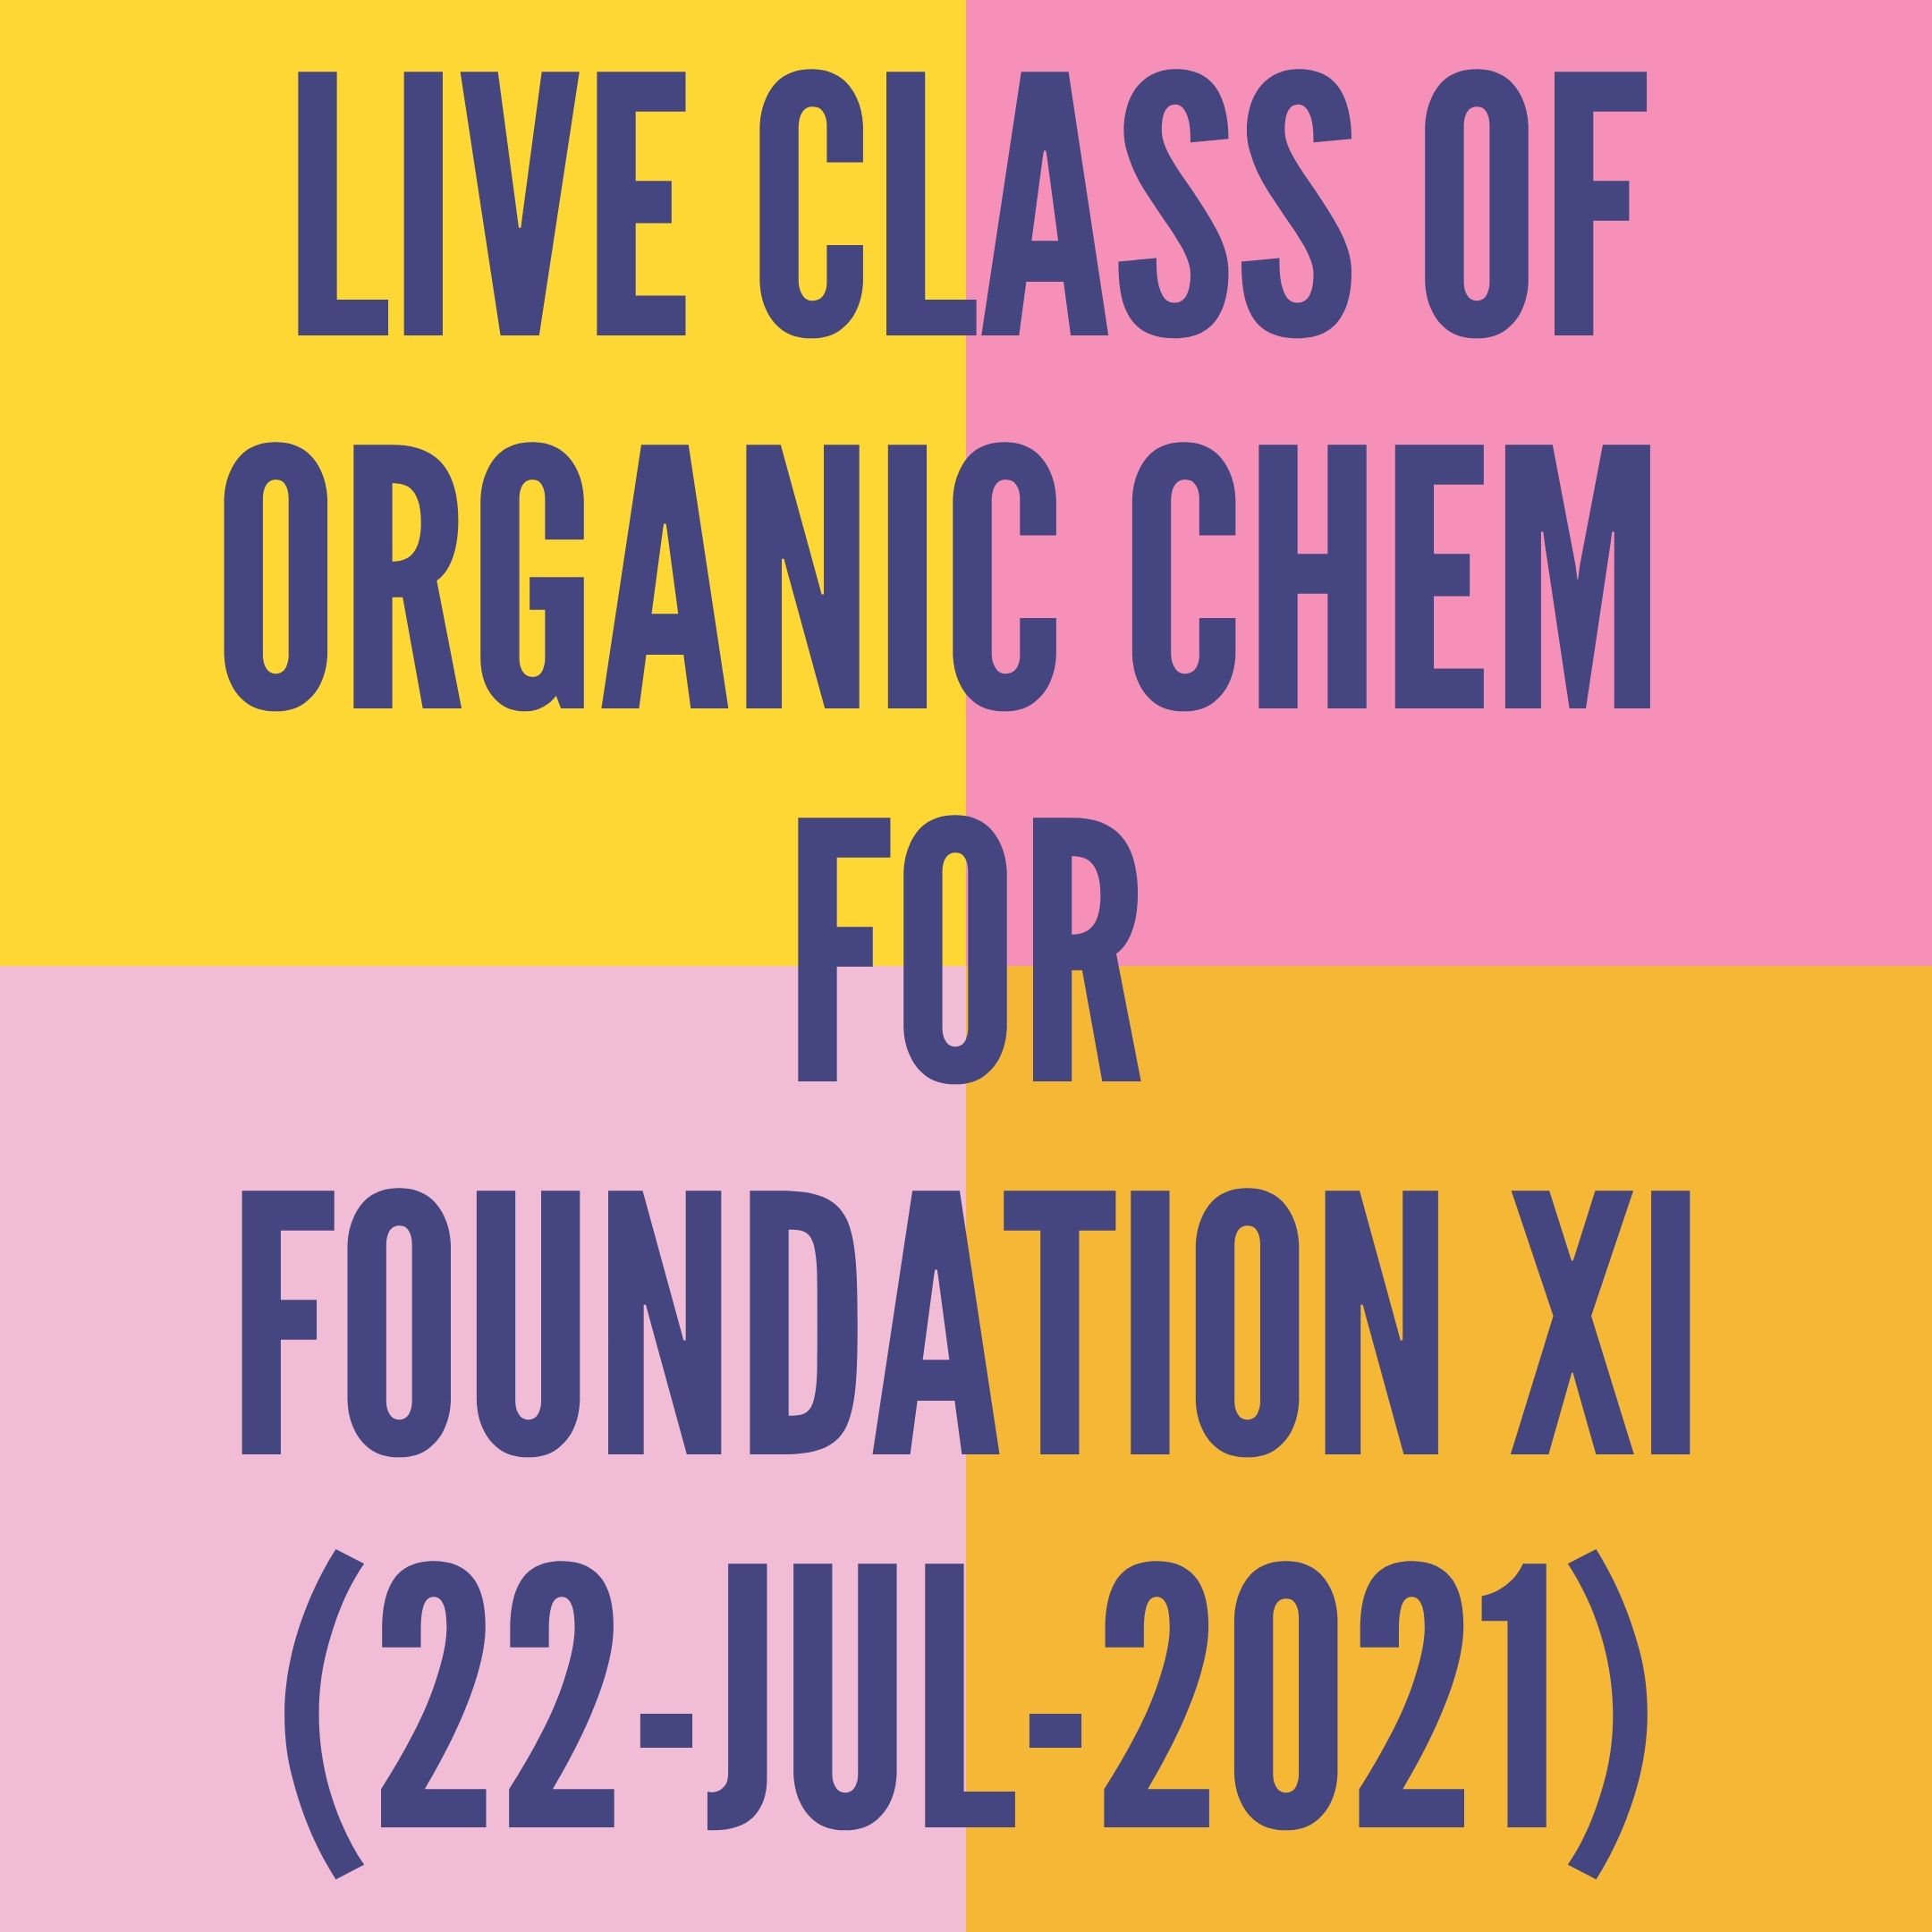 LIVE CLASS OF ORGANIC CHEMISTRY FOR FOUNDATION XI (22-JUL-2021) NOMENCLATURE